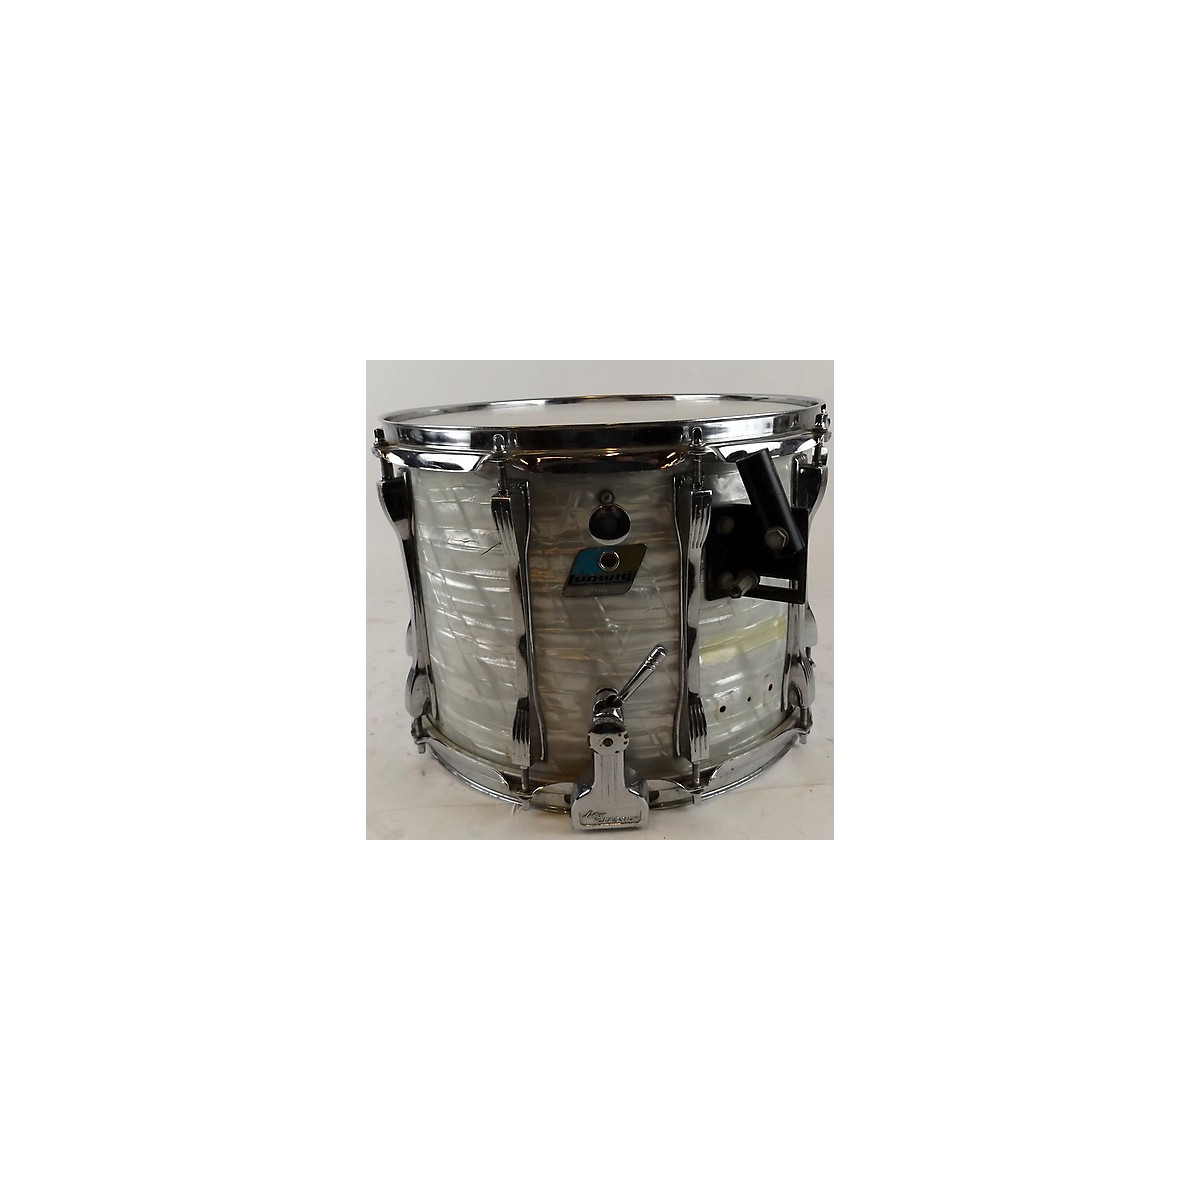 Ludwig 1990s 14X10 Marching Snare Drum